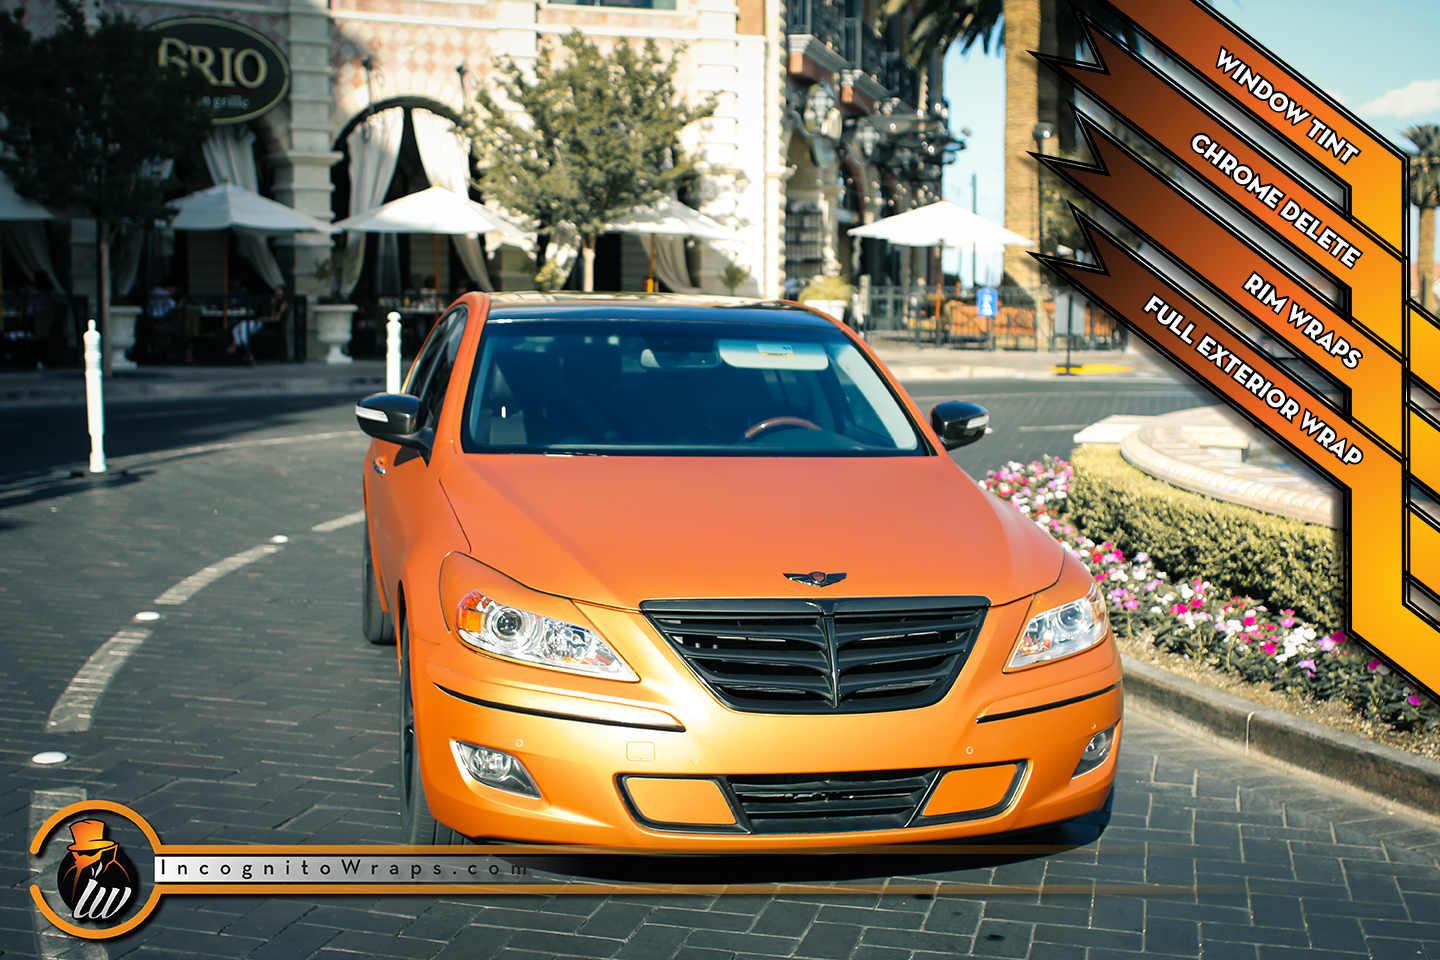 Hyundai Genesis Sedan - Matte Blazing Orange Wrap with Gloss and Matte Black Chrome Delete